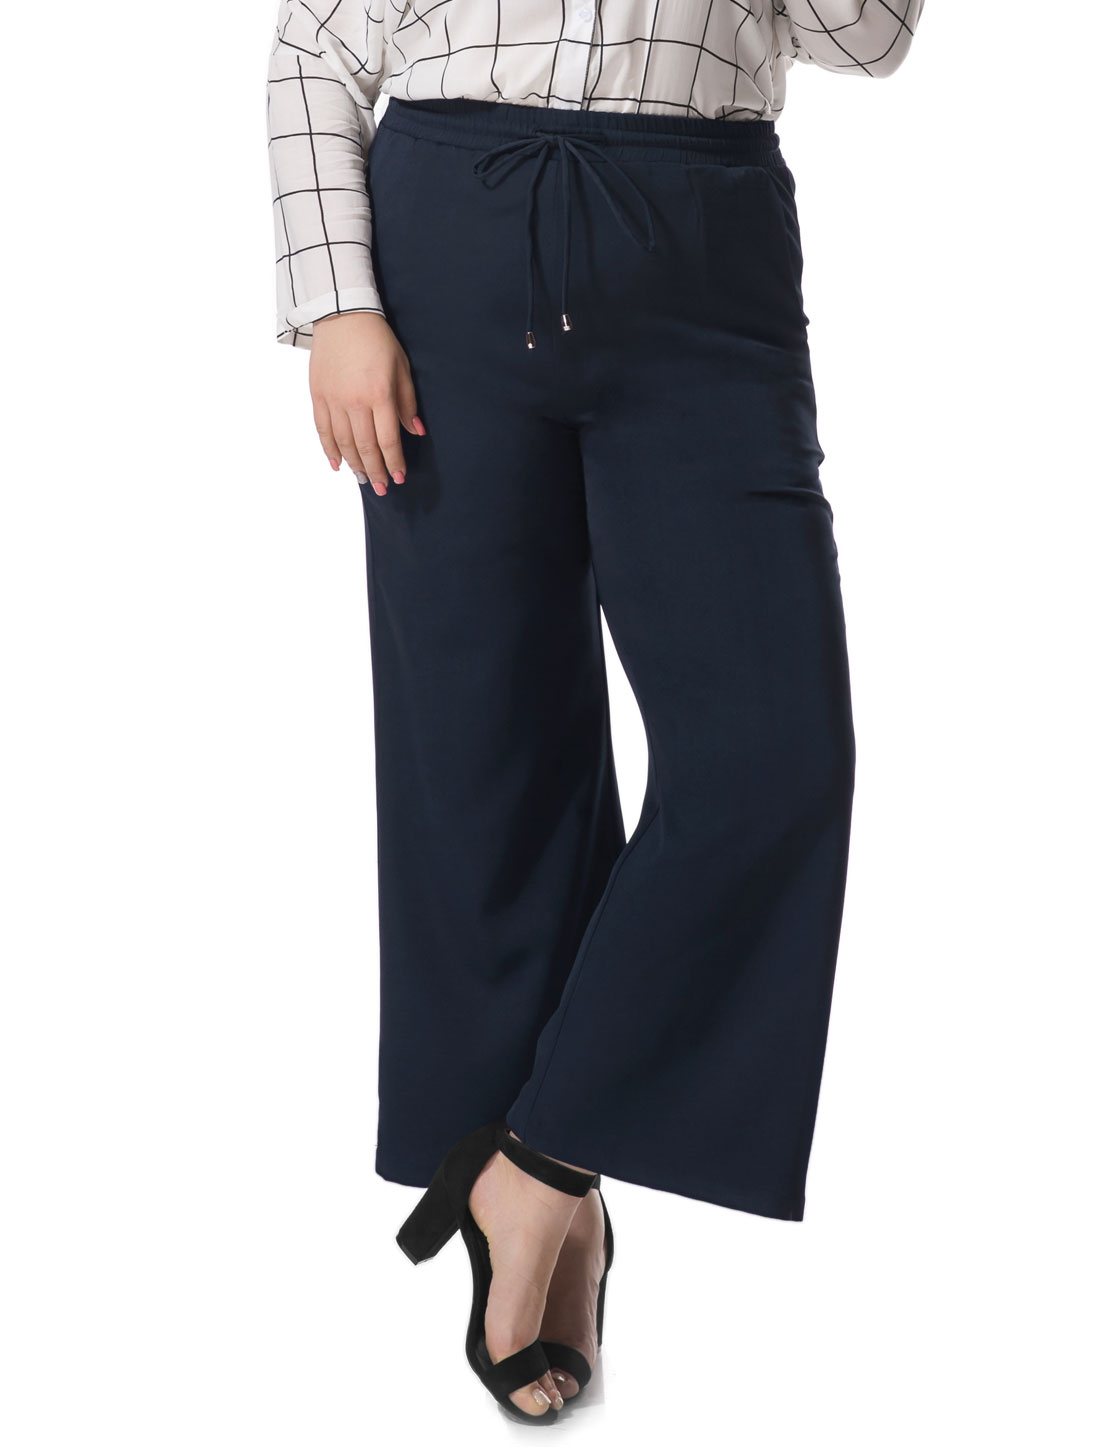 Women Plus Size Wide Leg Elastic Drawstring Pants Blue 1X